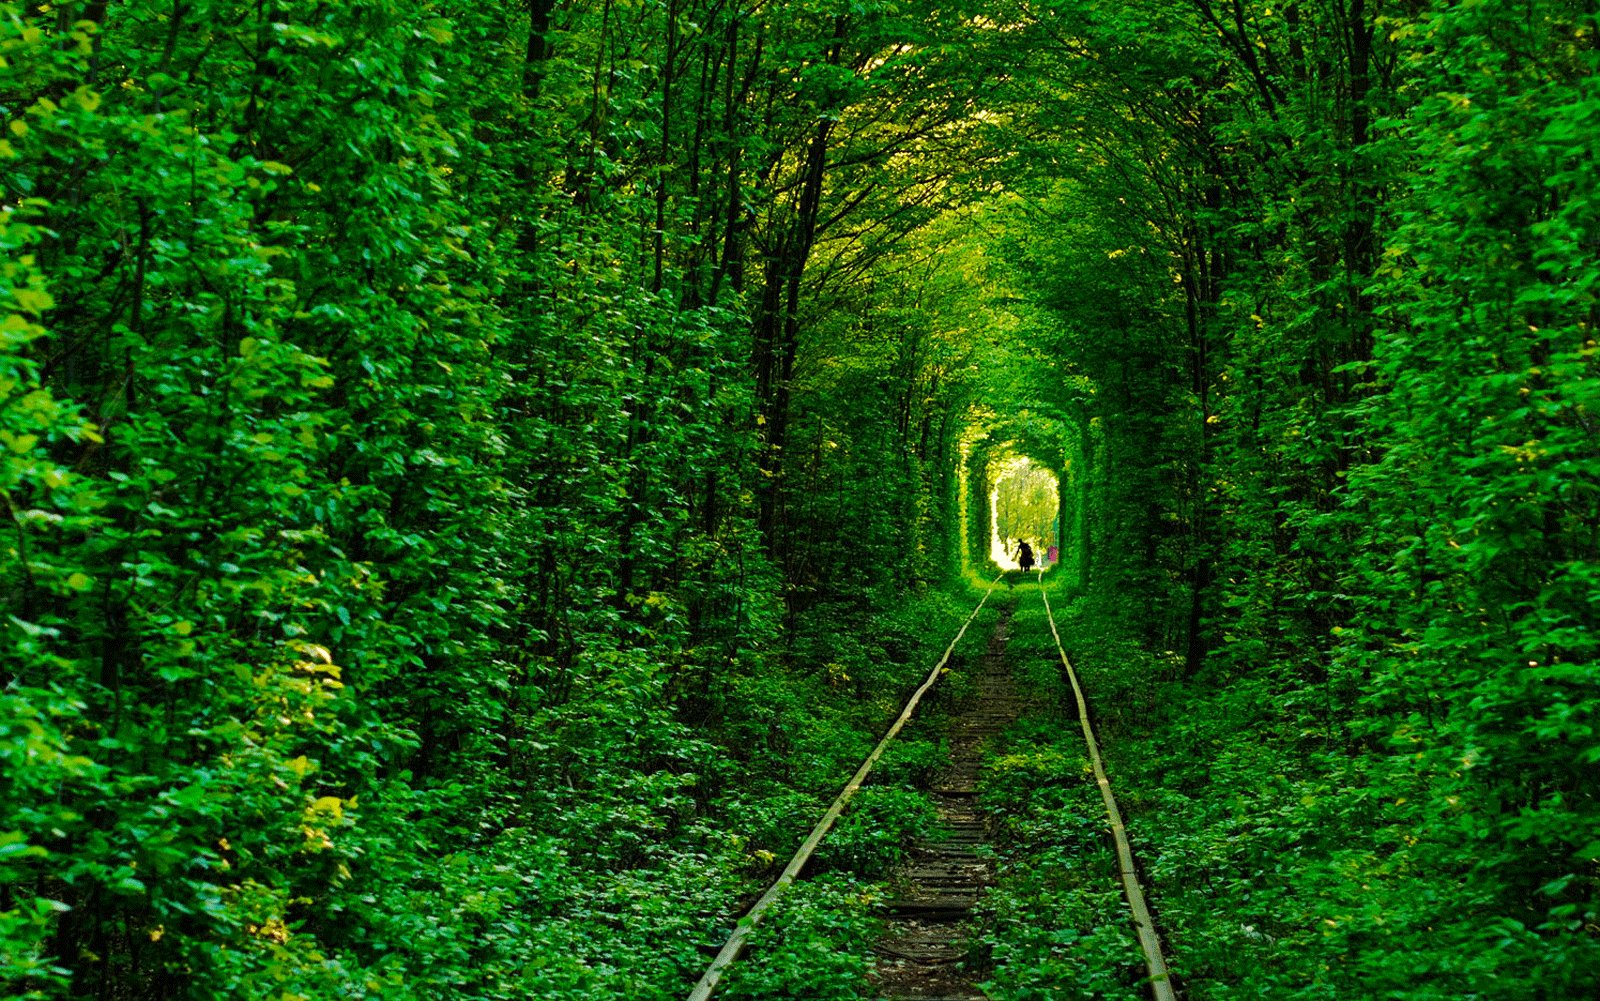 How to walk through Tunnel of Love in Rovno